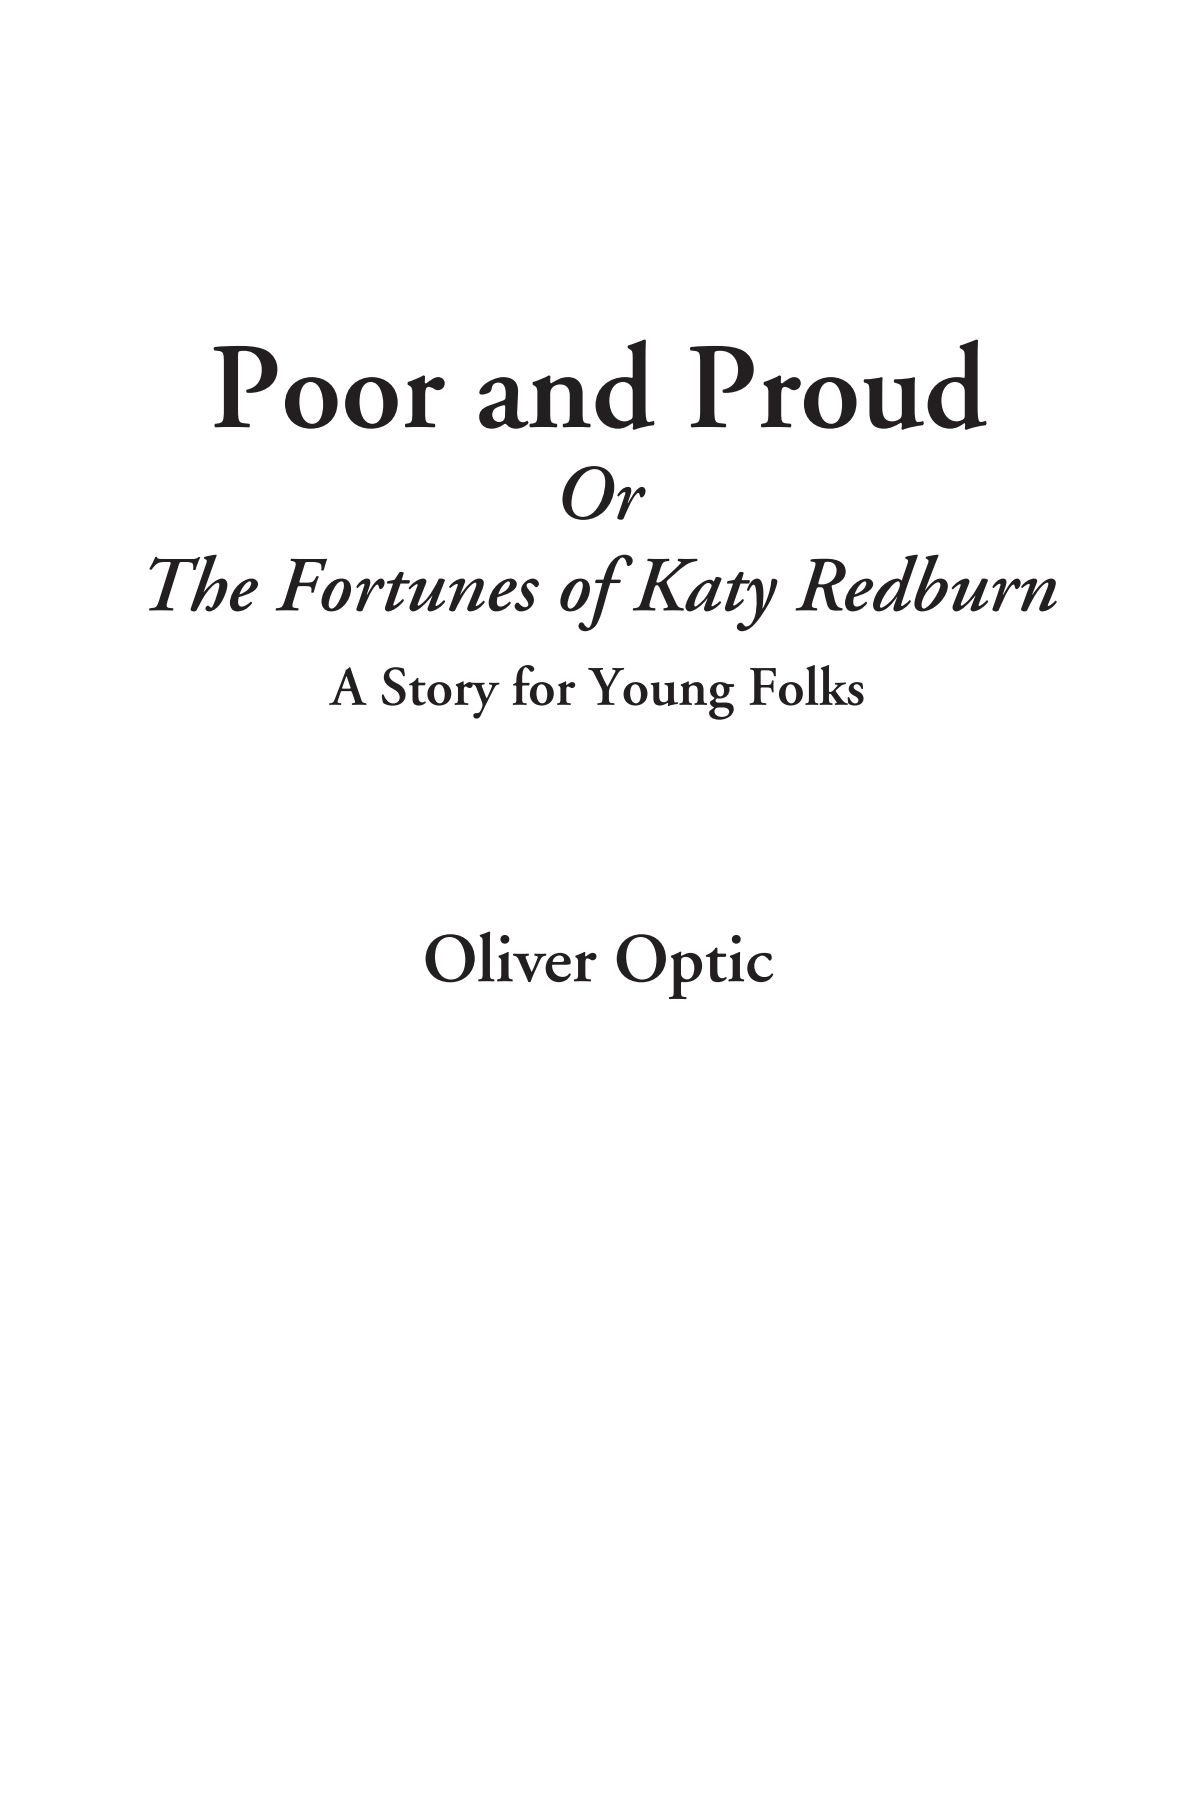 Download Poor and Proud Or The Fortunes of Katy Redburn (A Story for Young Folks) ebook